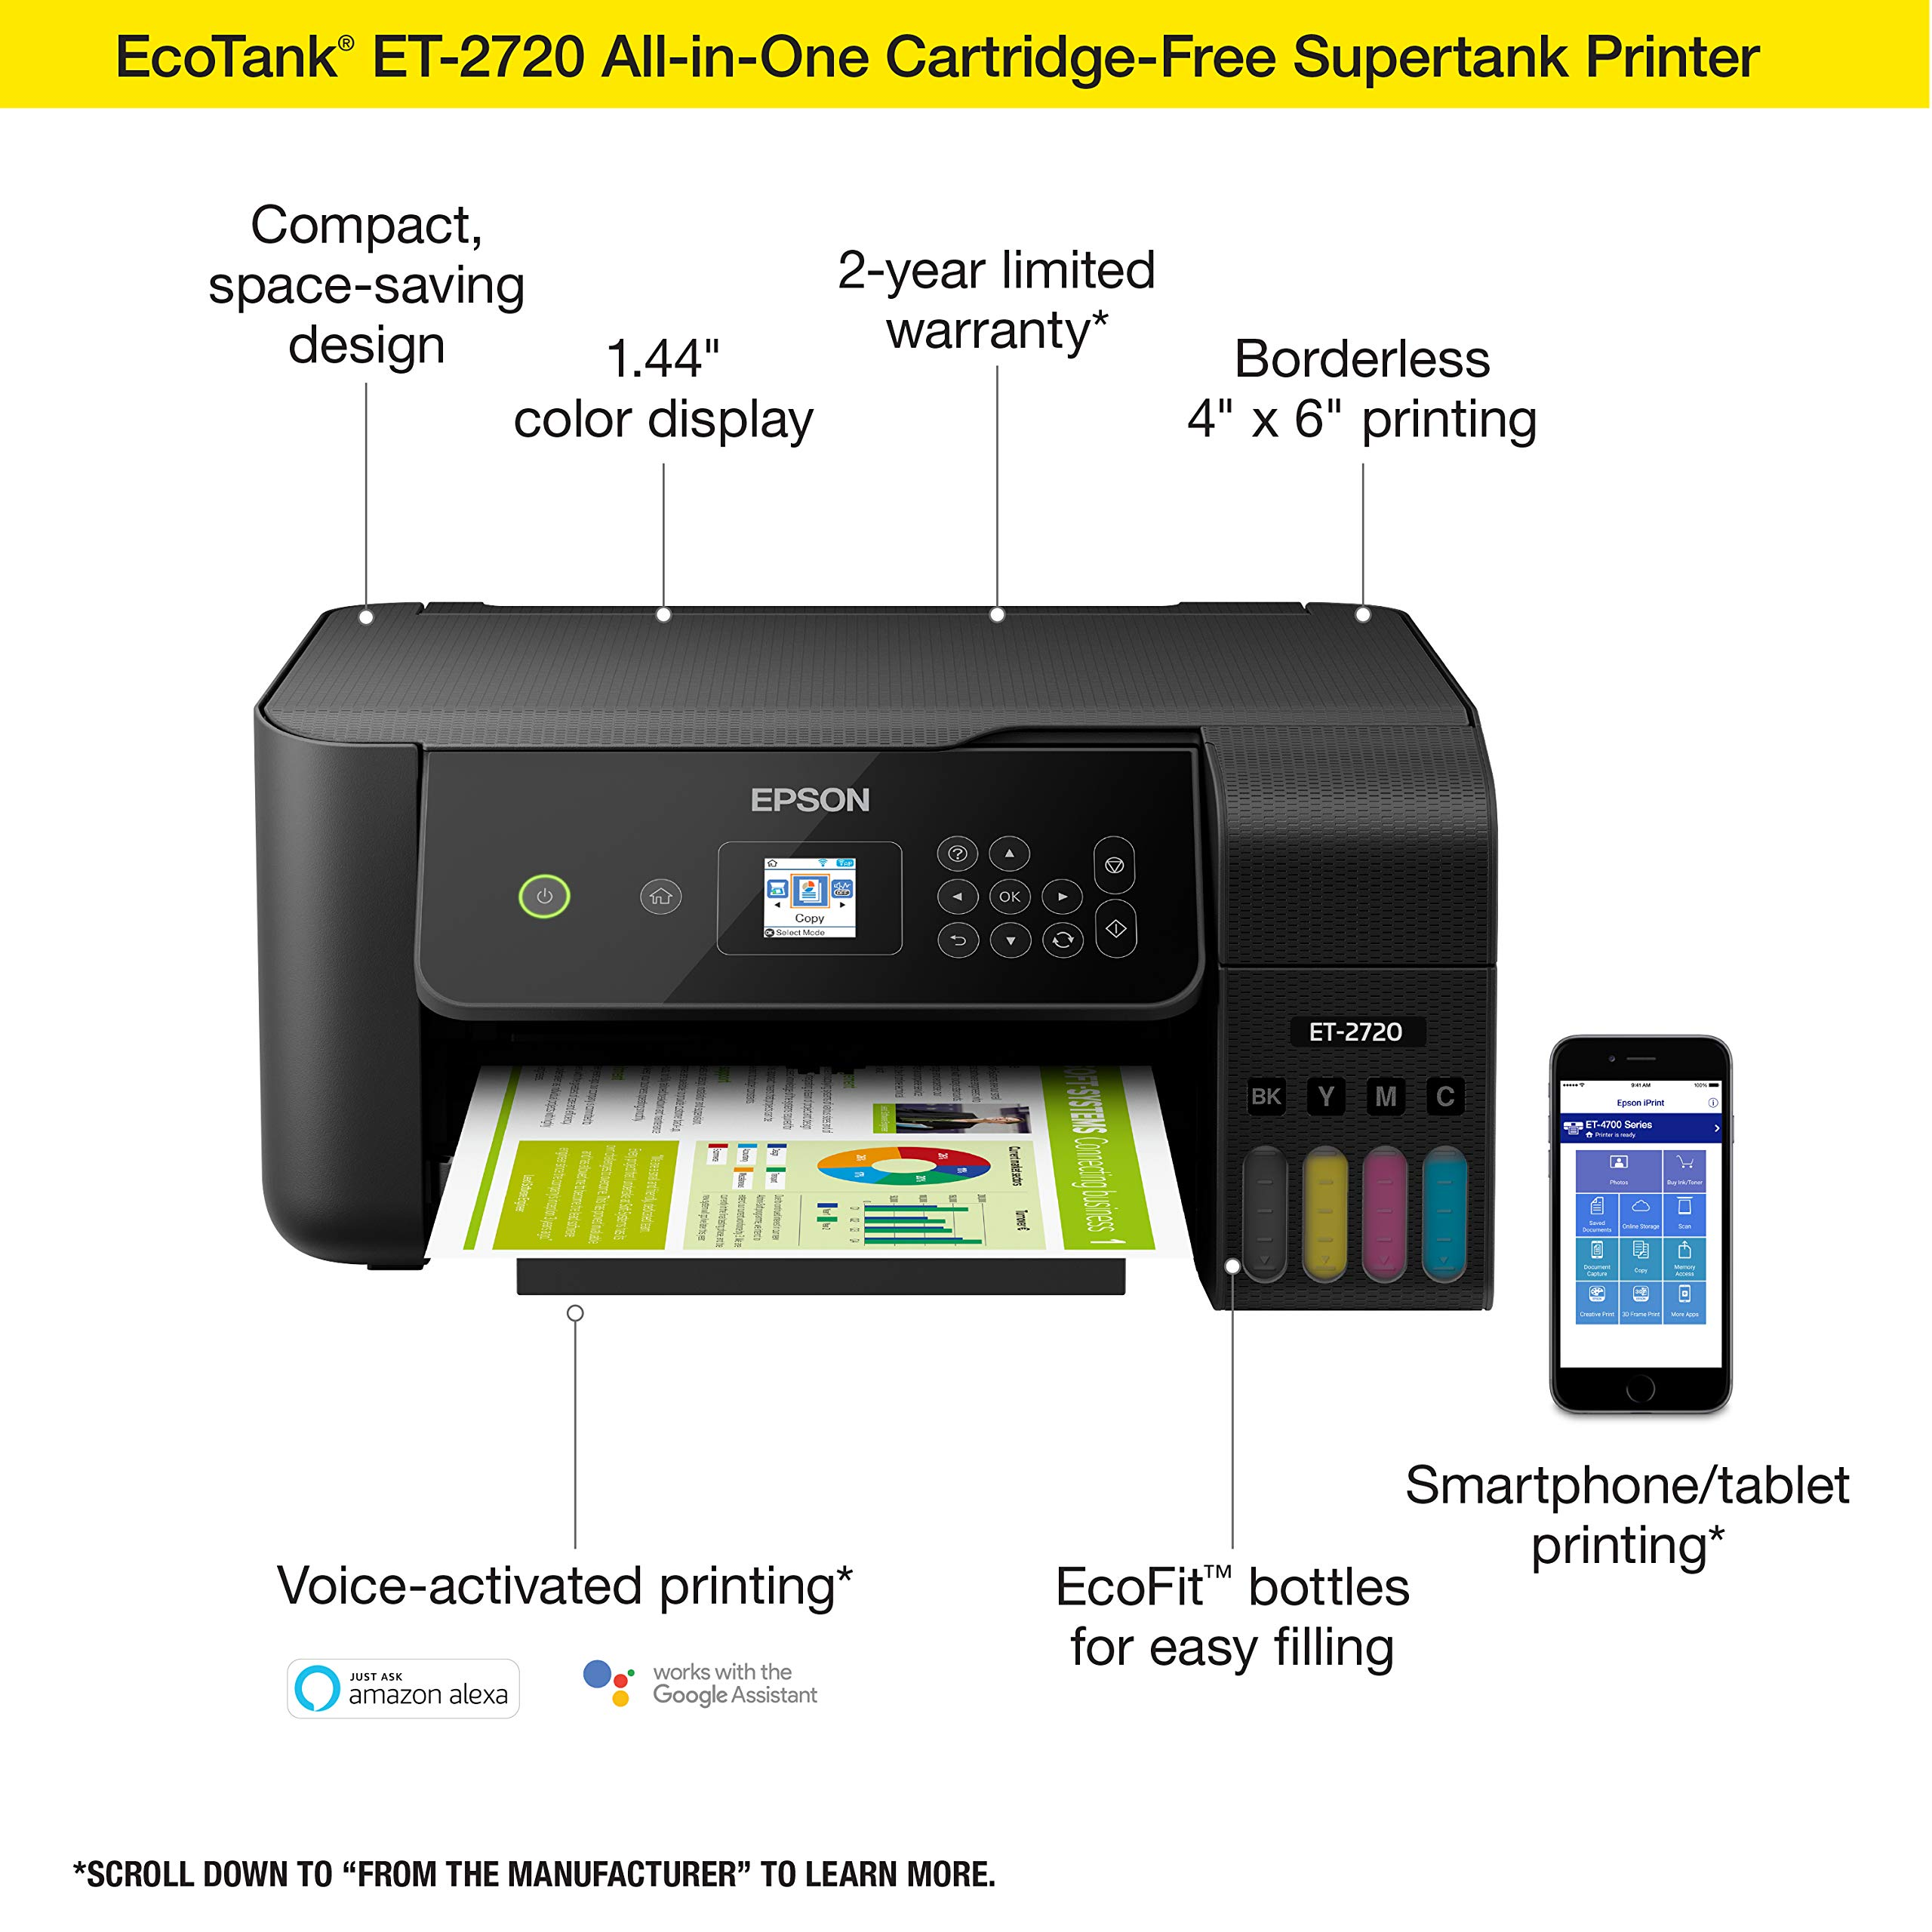 Epson EcoTank ET-2720 Wireless Color All-in-One Supertank Printer with Scanner and Copier - Black by Epson (Image #3)